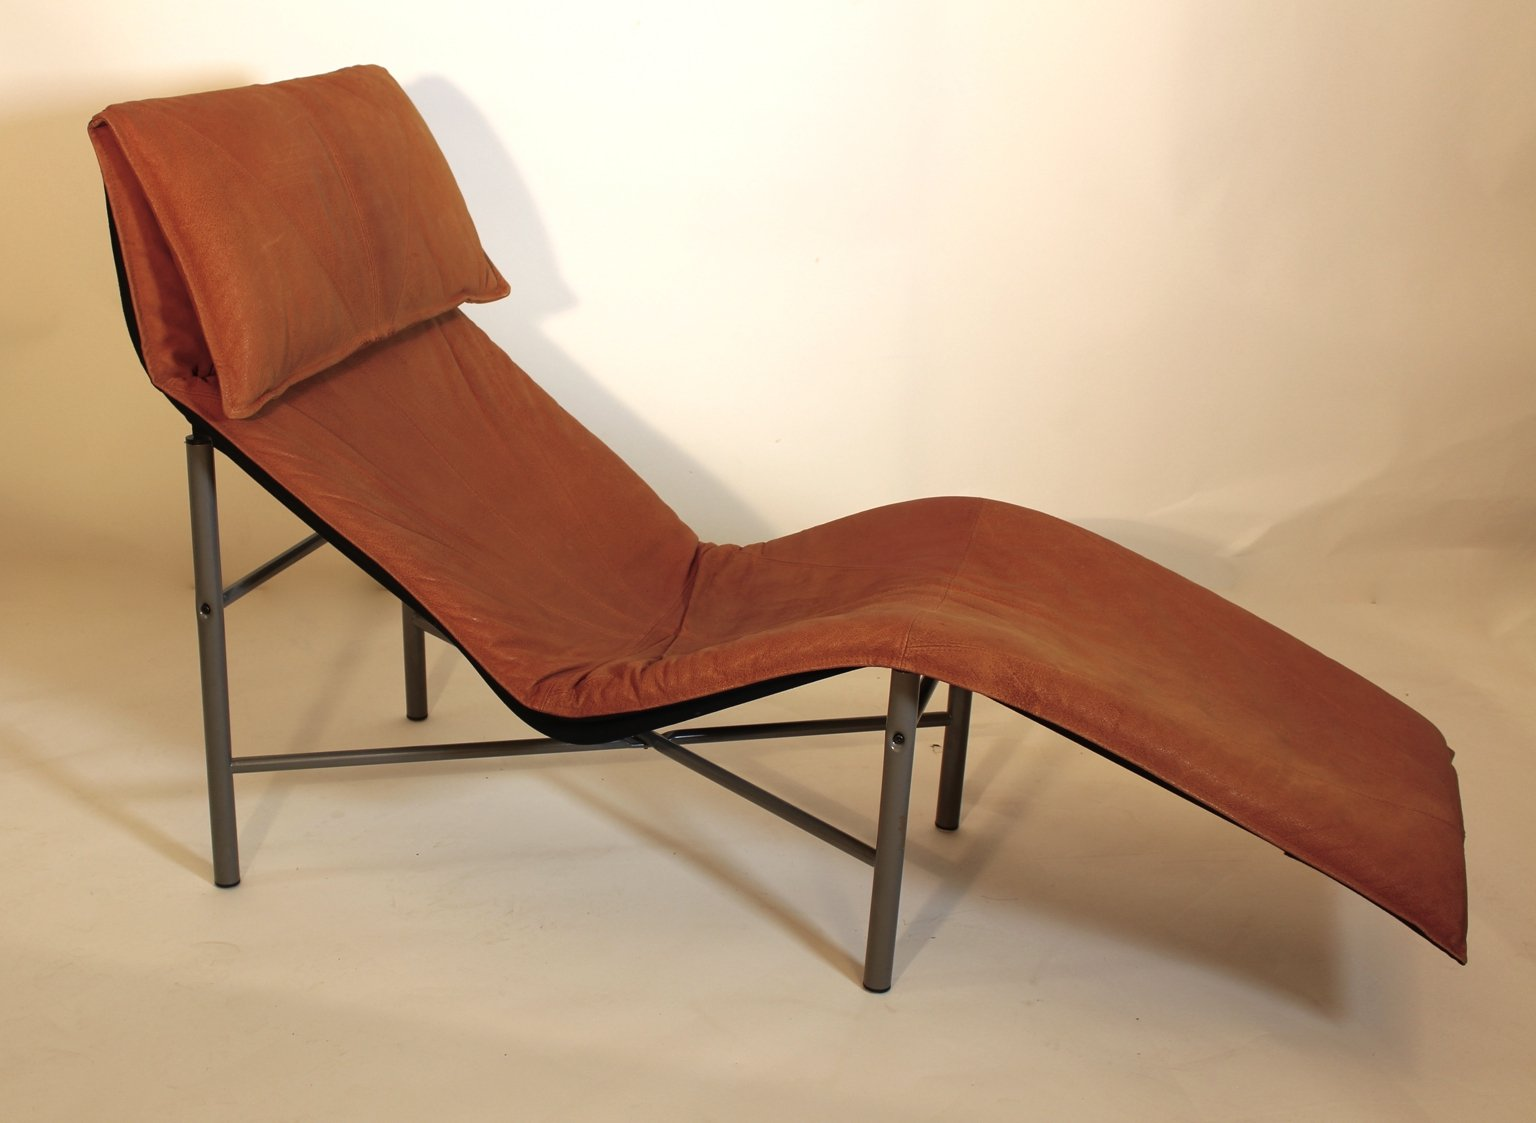 Brown leather chaise longue by tord bjorklund 1970s for for Chaise longue leather